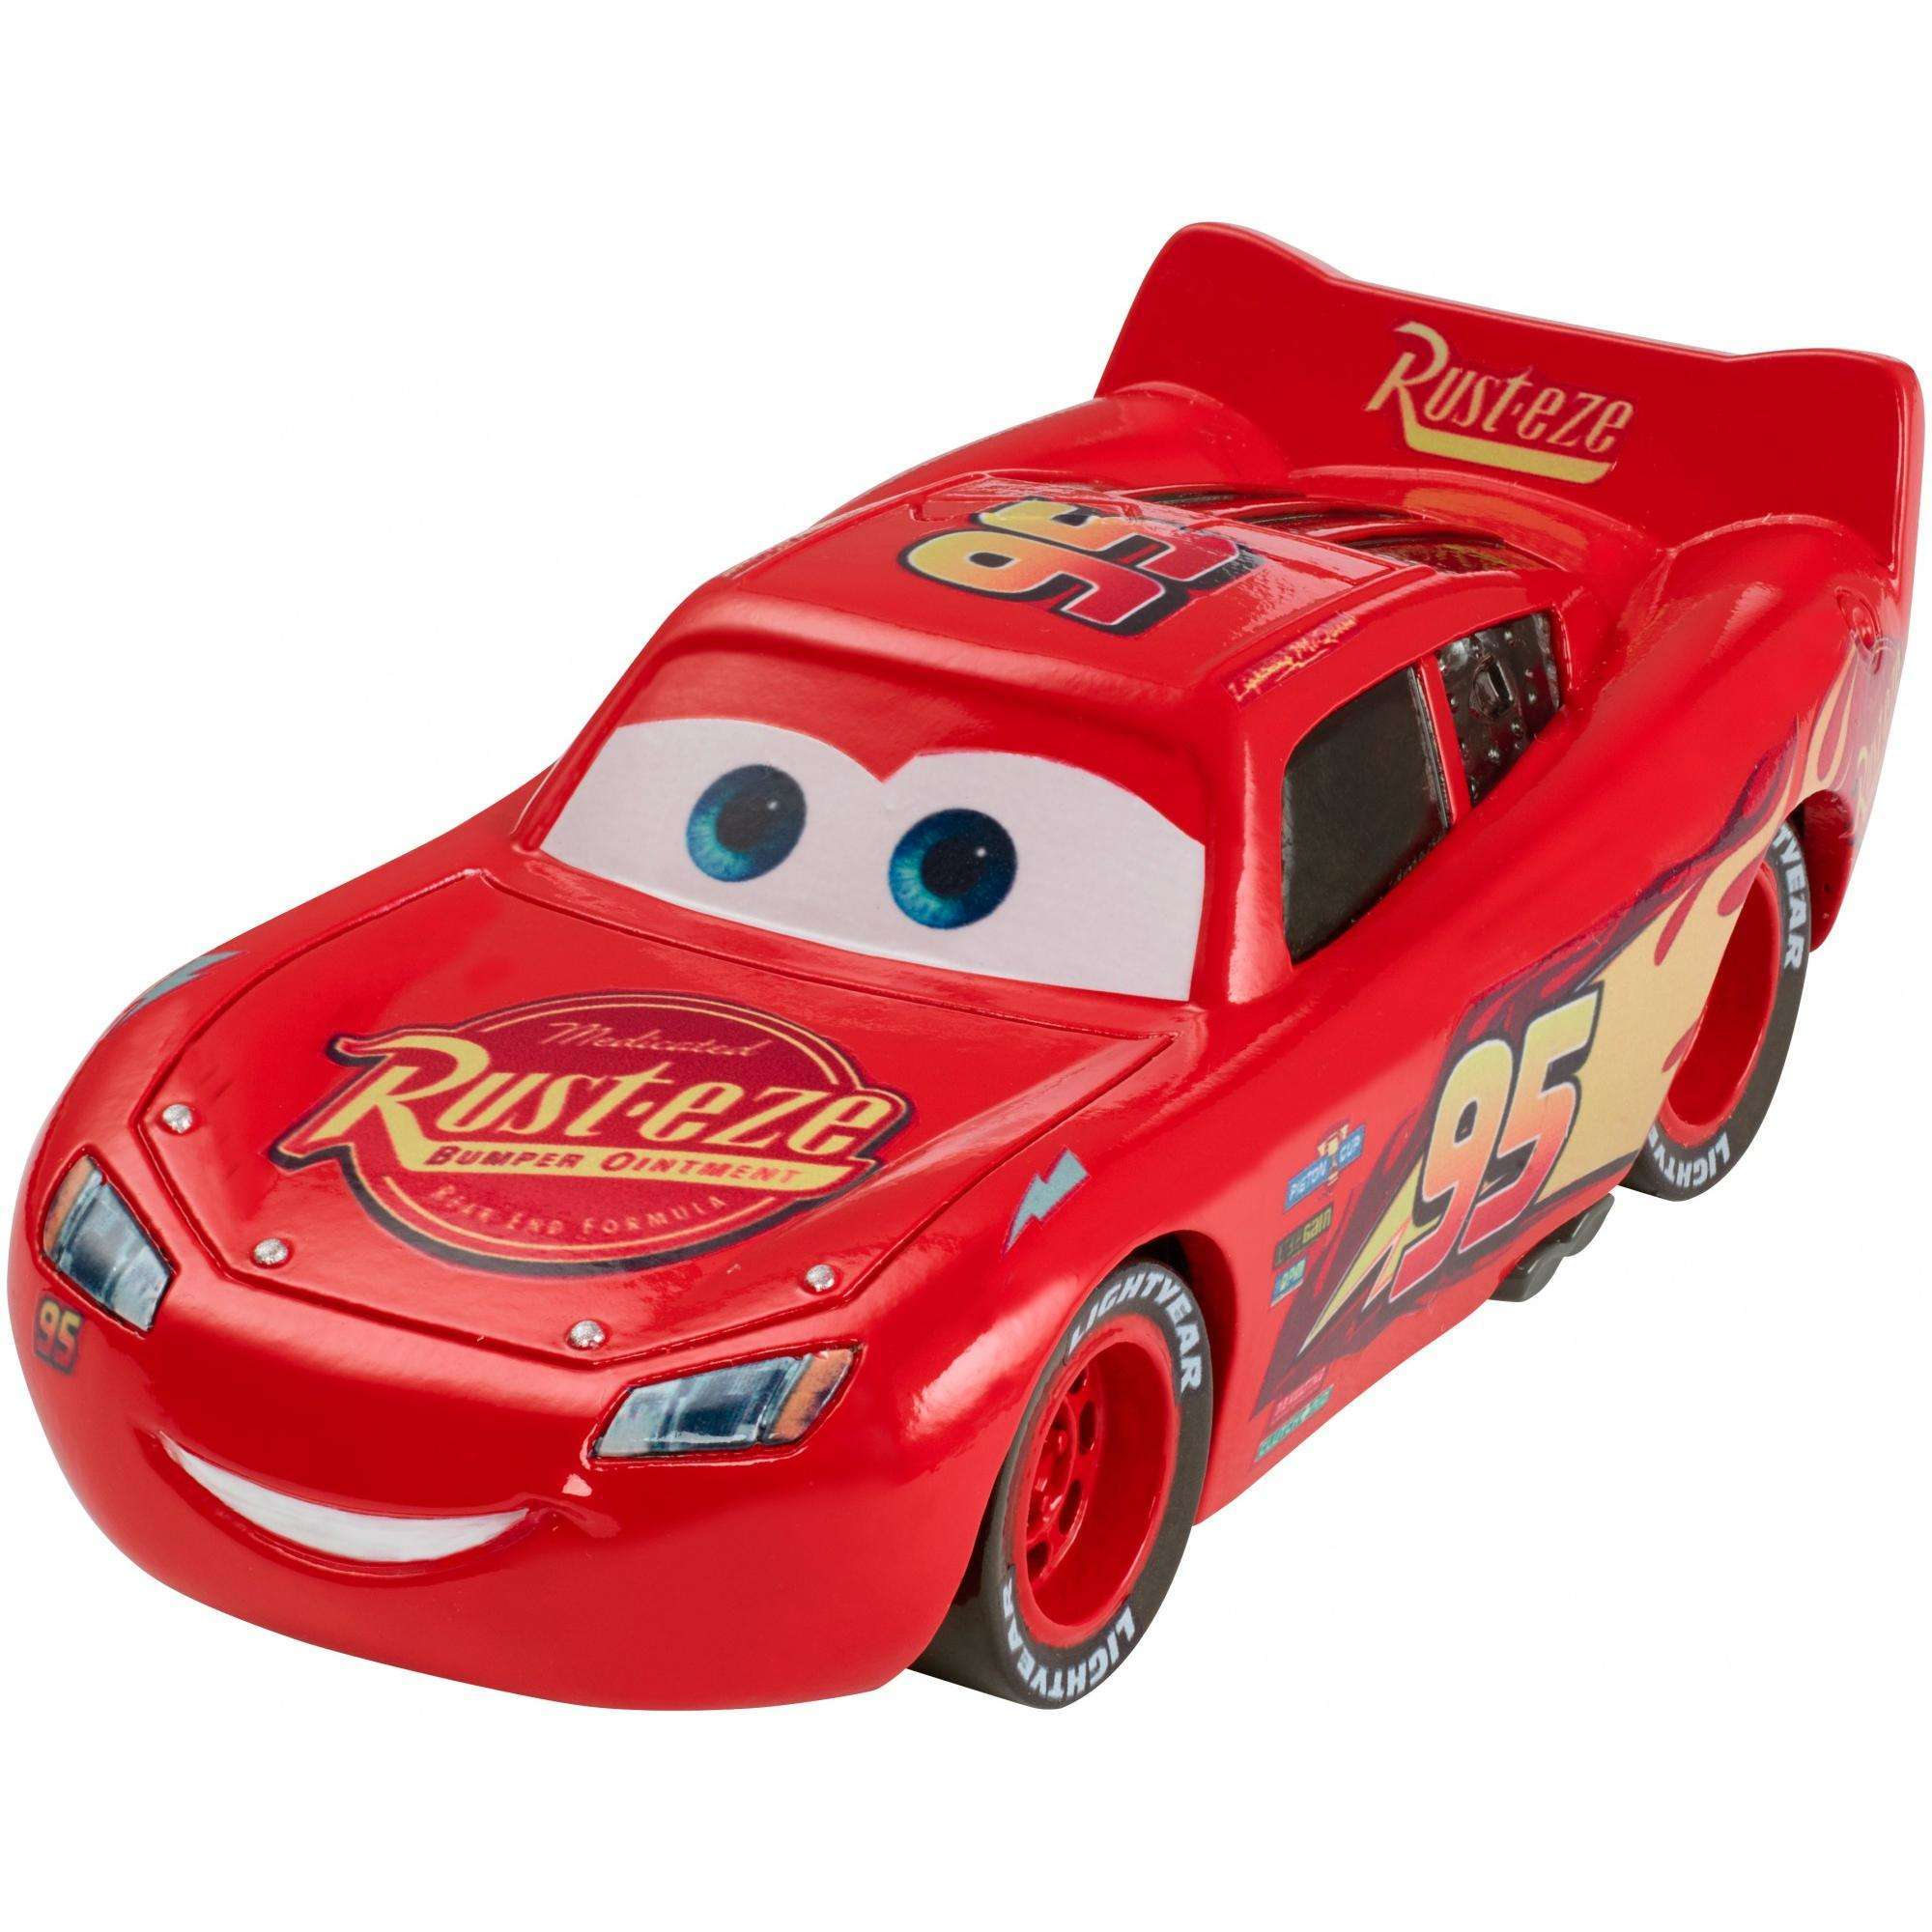 Disney/Pixar Cars 3 Lightning McQueen Vehicle